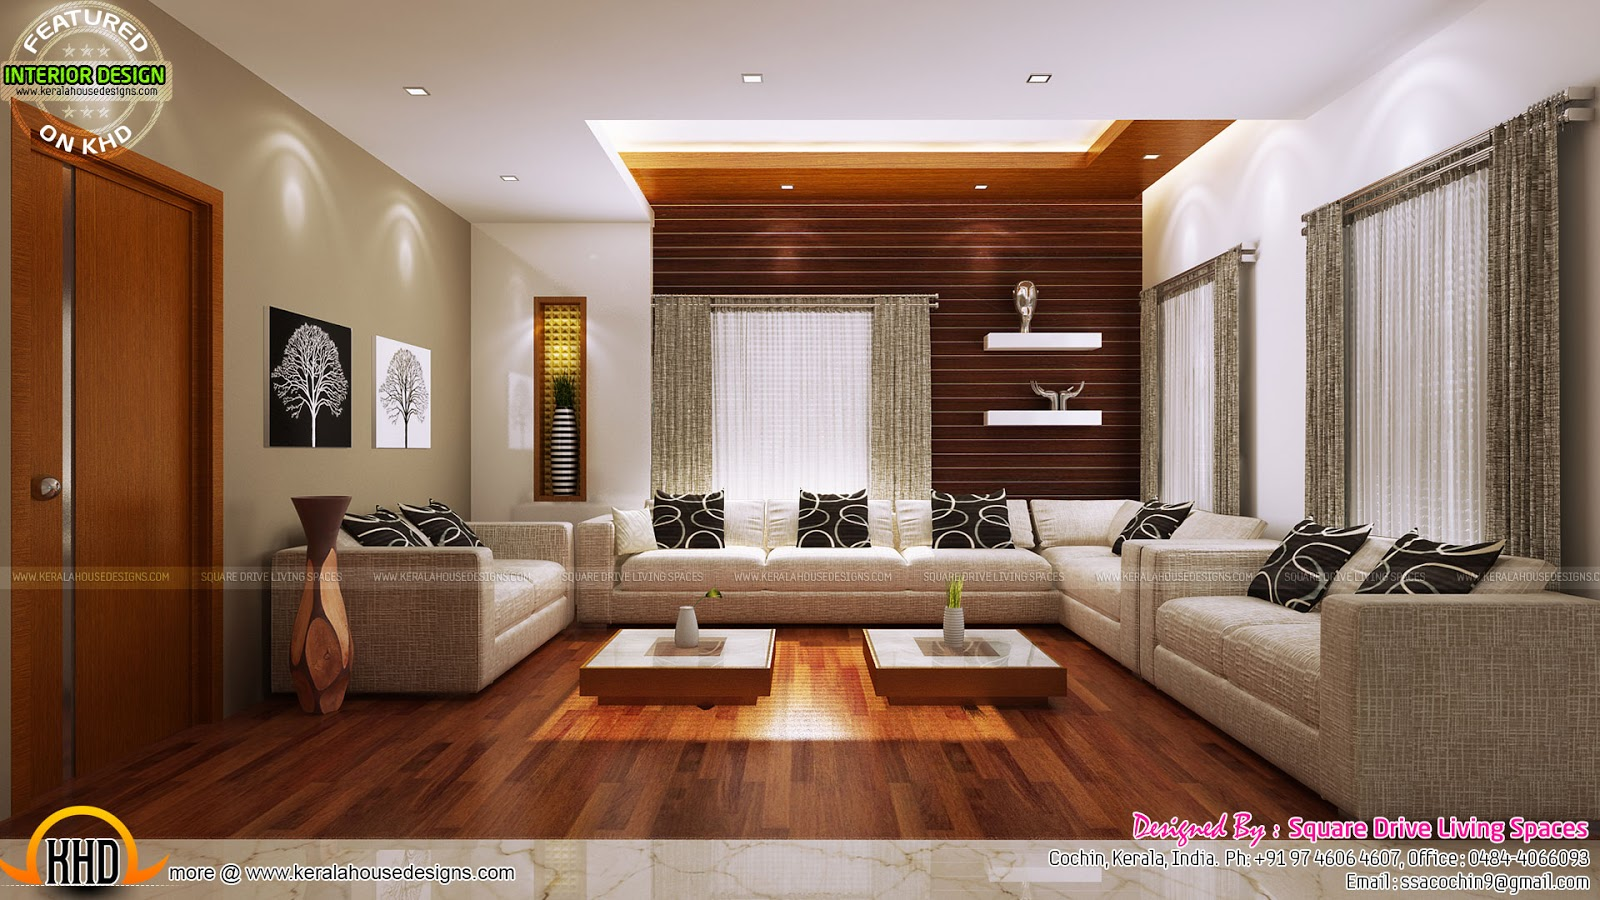 Excellent kerala interior design kerala home design and for Interior designs for homes pictures